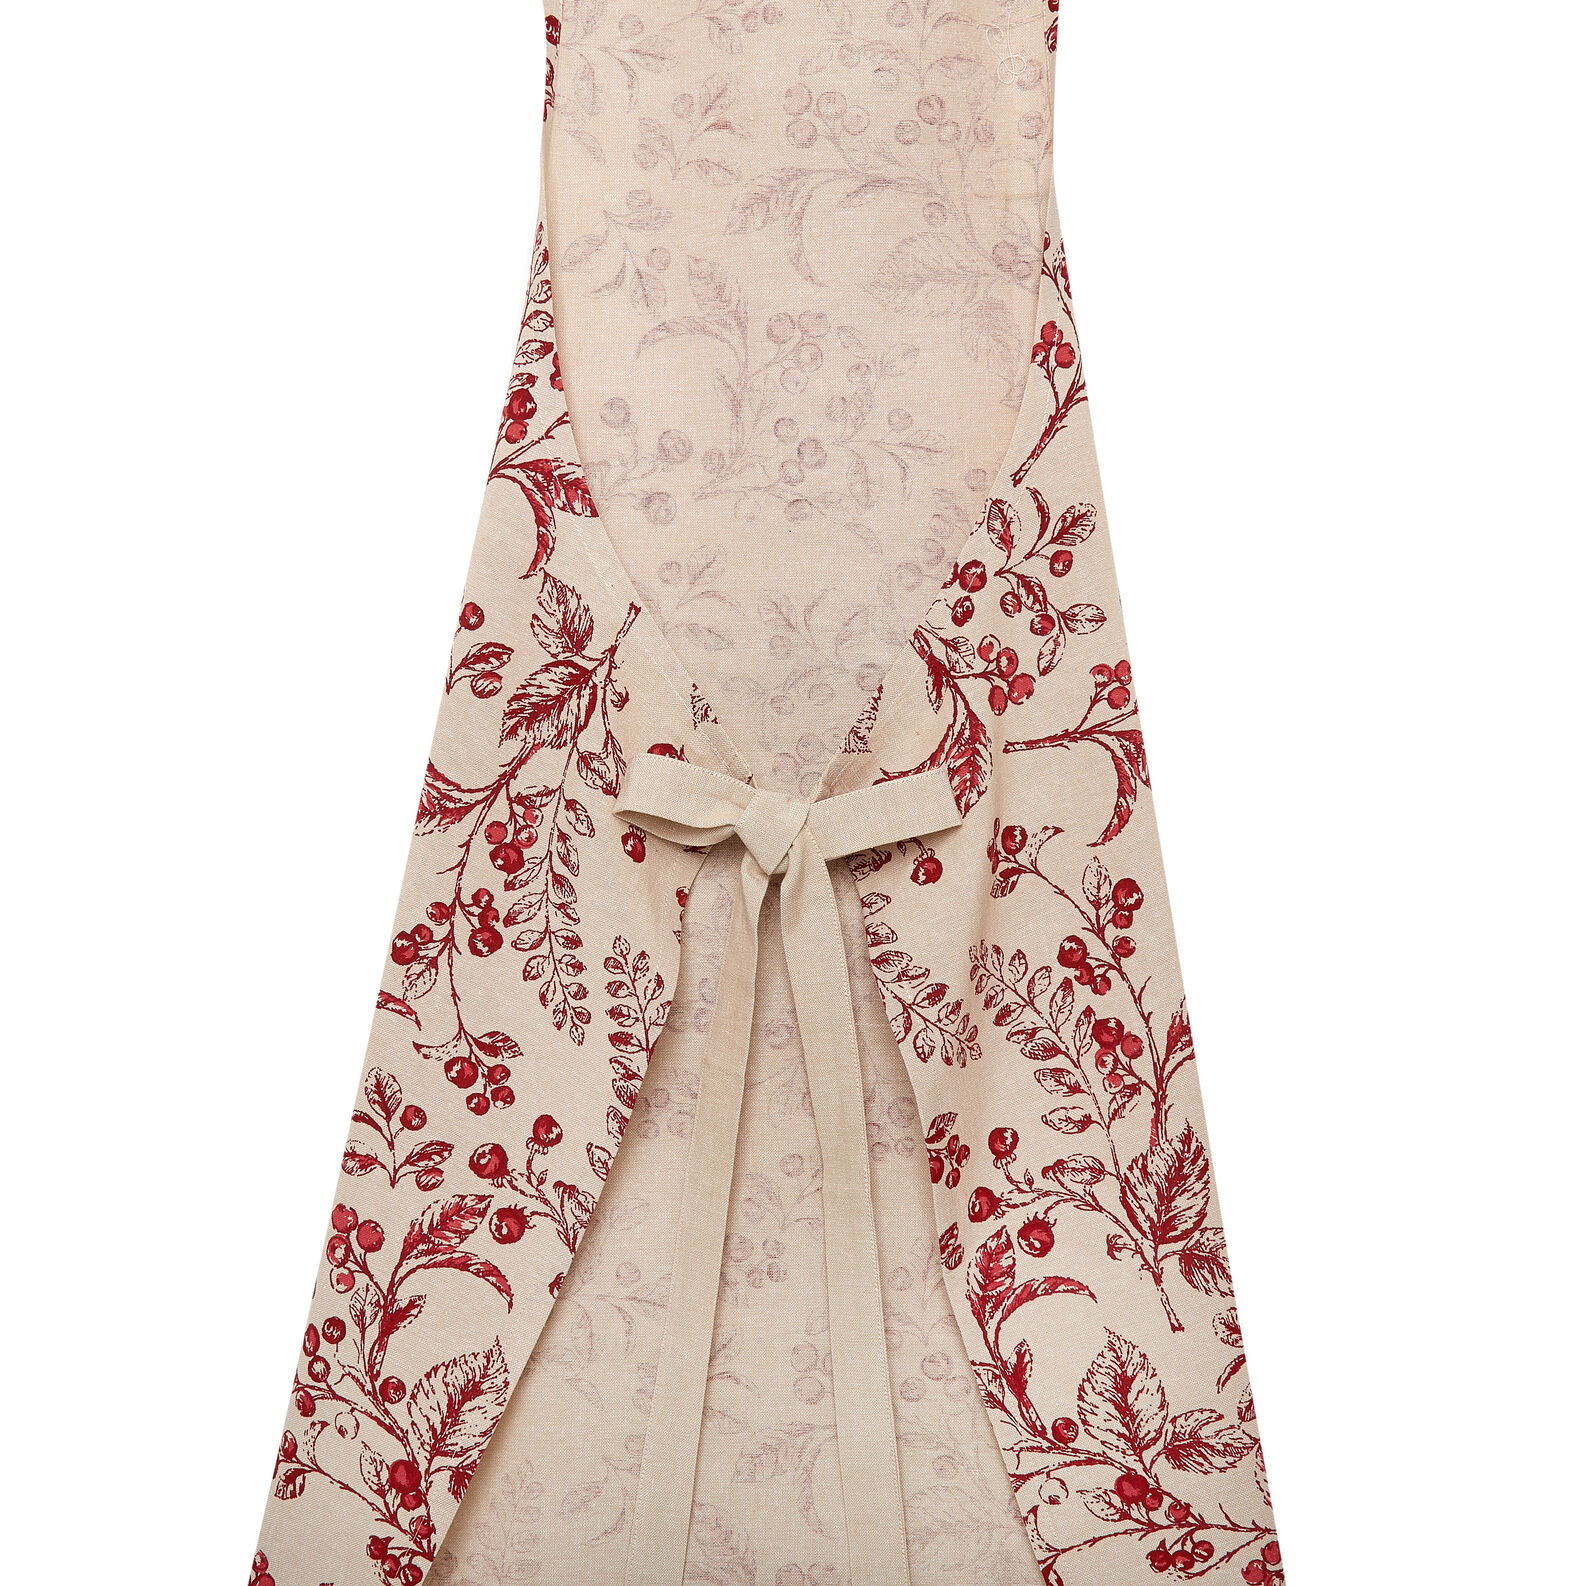 Kitchen apron in 100% cotton with round peppers print